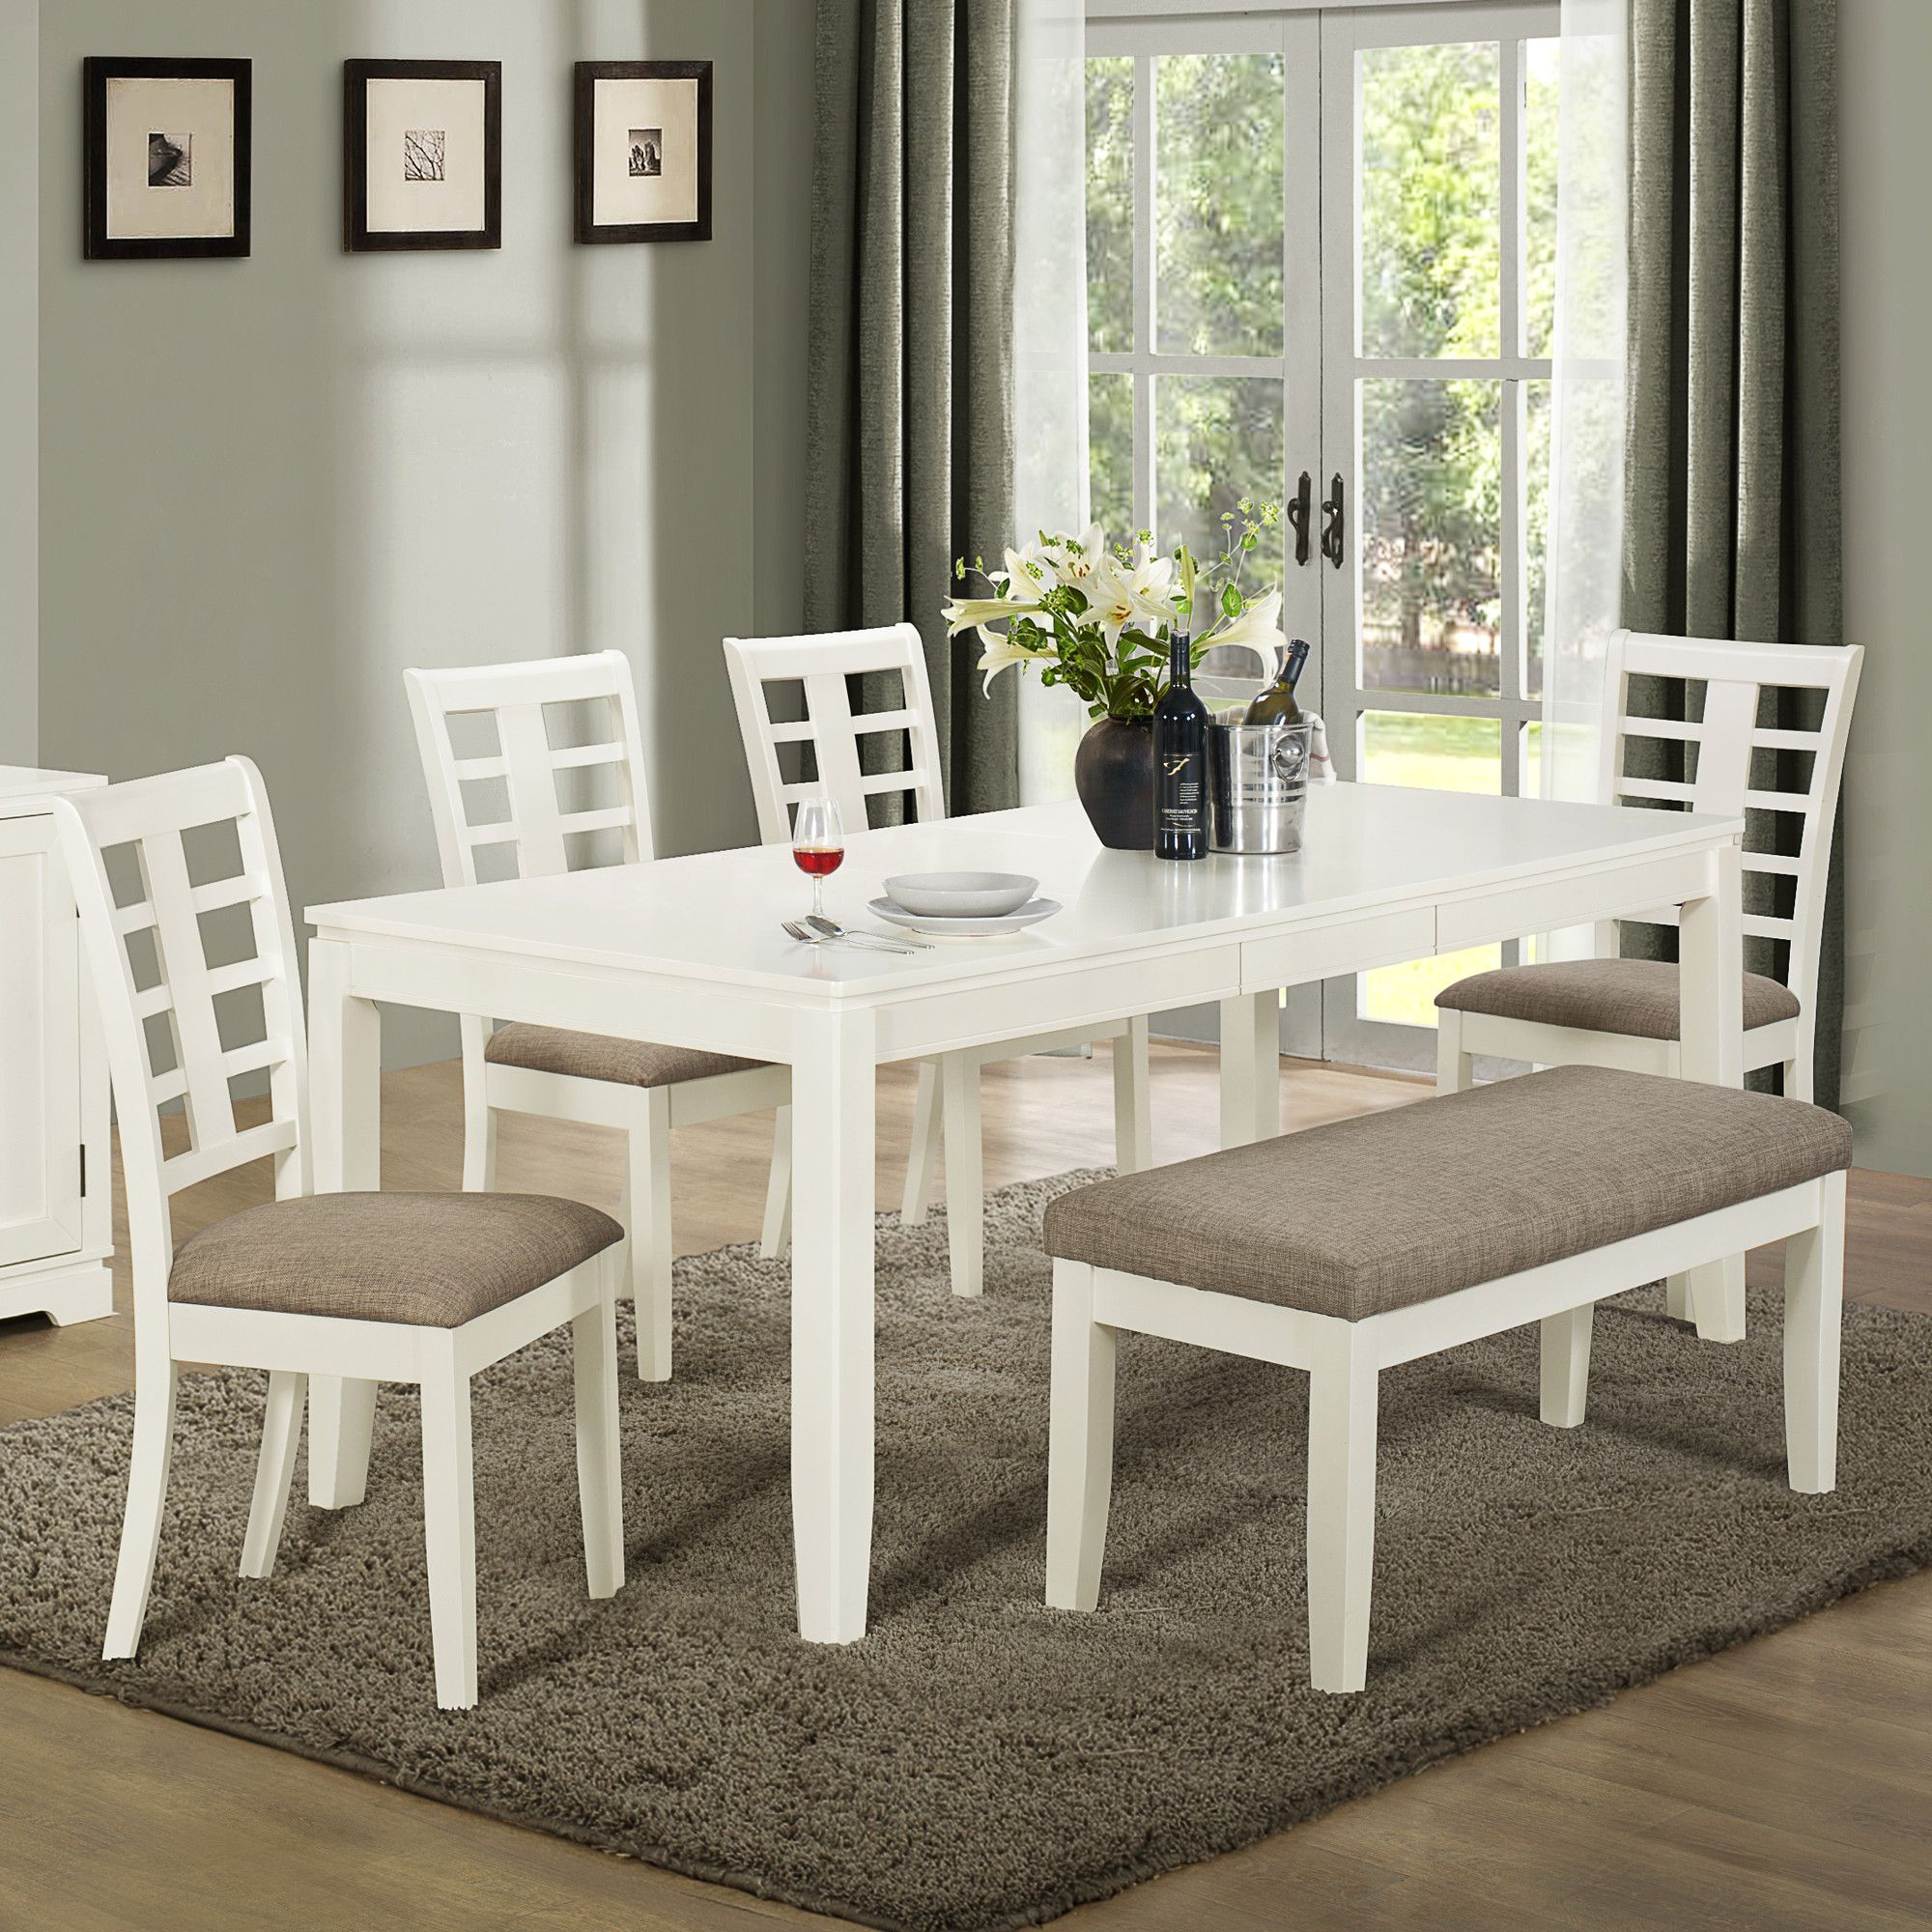 Built With Solid Wood And Mdf Board This White Grey Dining Set Bench Lightens Up The E As You Can See It Works Well A